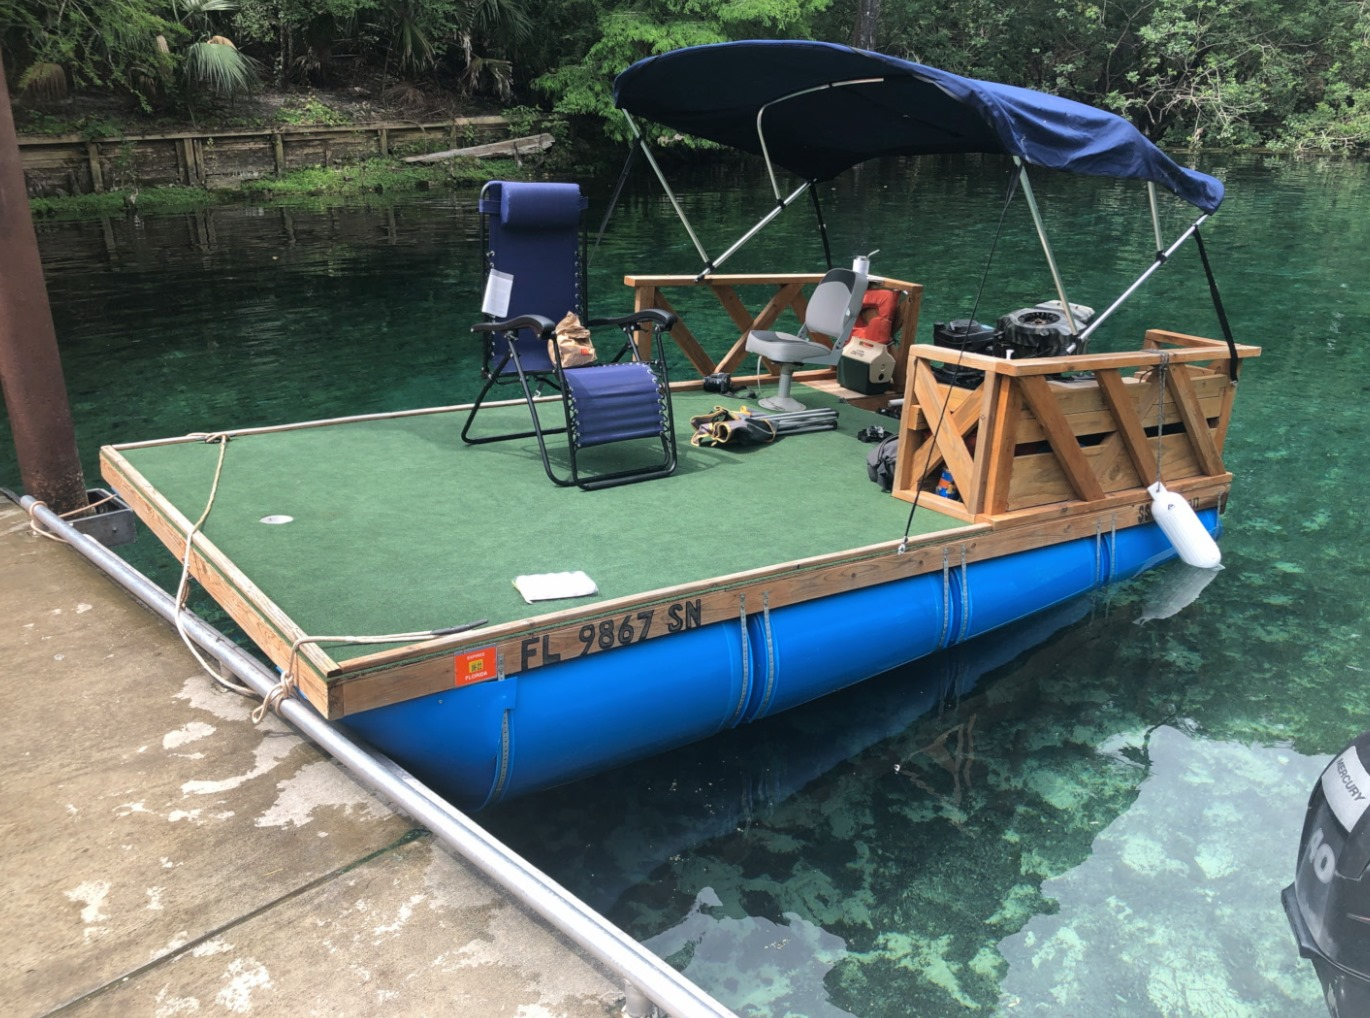 Fishing boat? Party boat? The possibilities are endless! Make it your own.